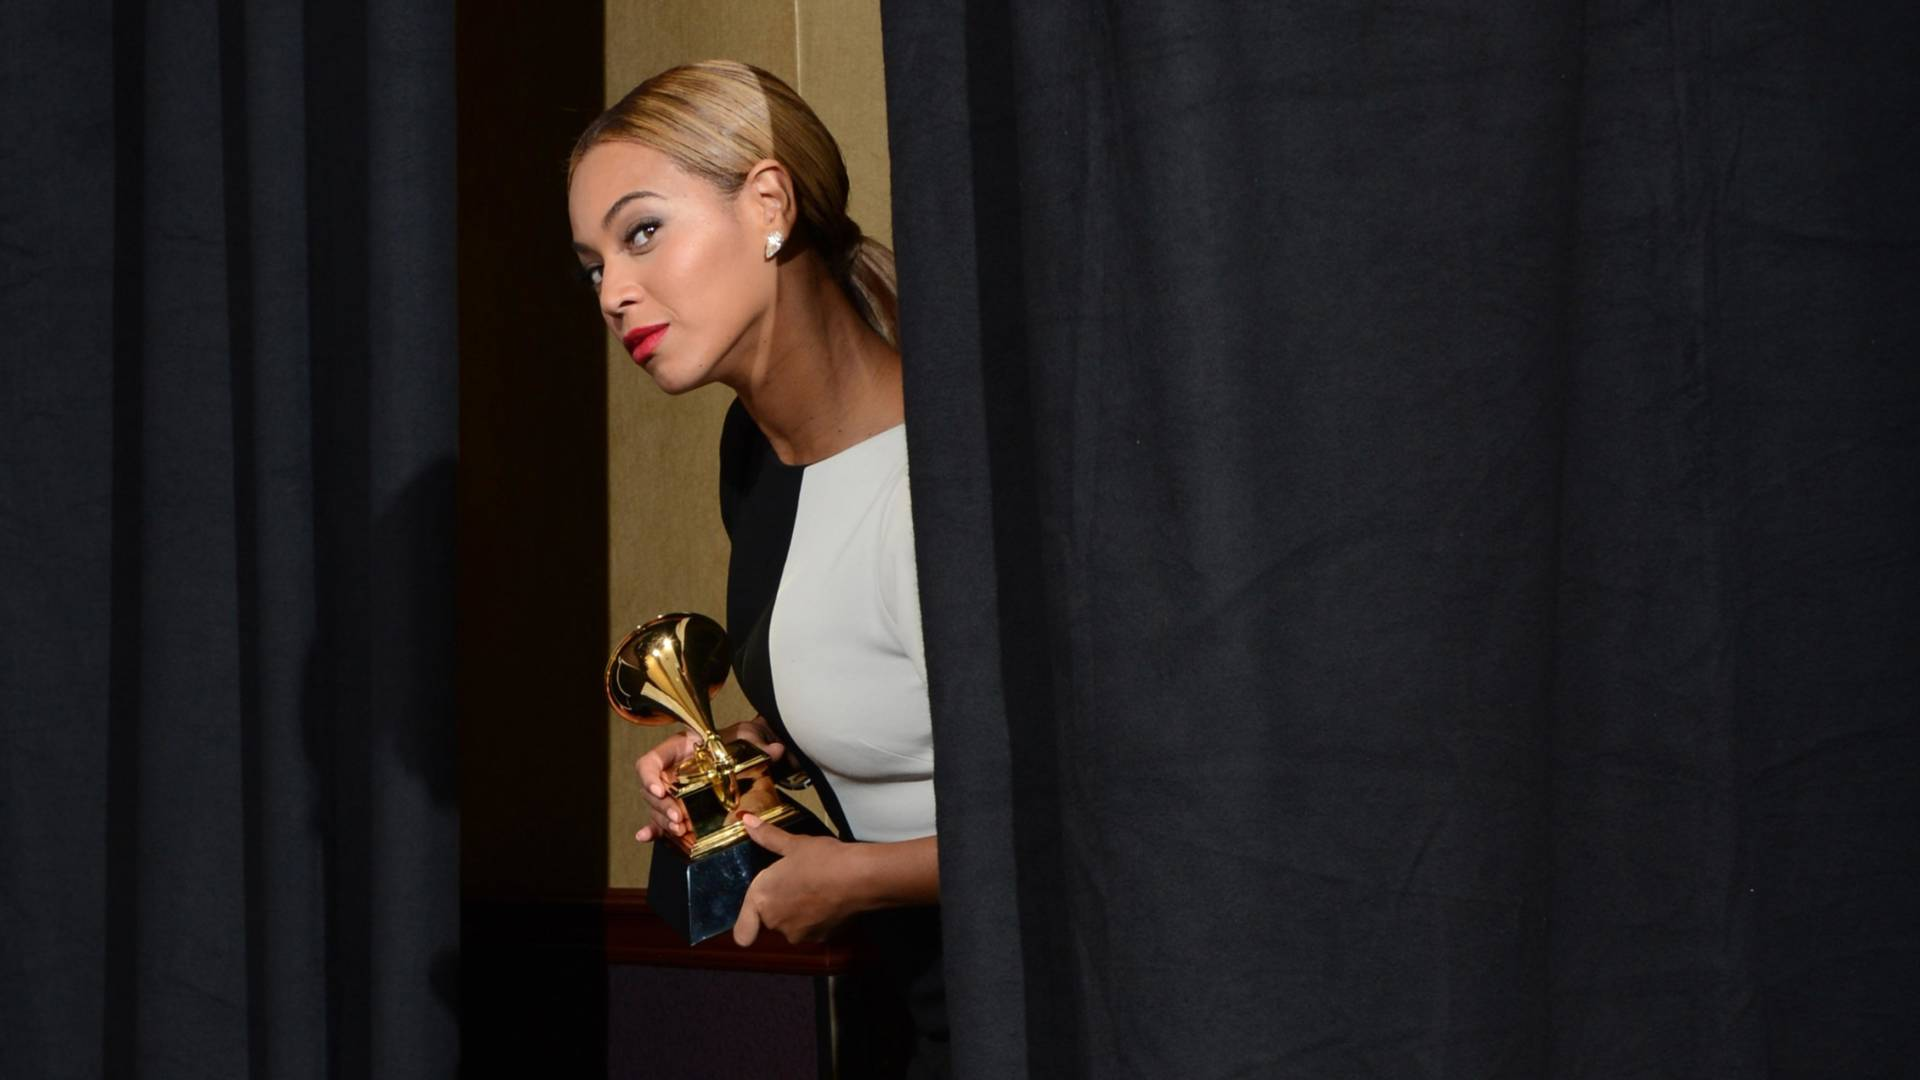 Beyoncé at the 55th Grammy Awards, February 10, 2013.  Whether or not the singer wins Album of the Year for 'Lemonade' is being seen as a litmus test for the Grammy Awards' relevance. Photo: Robyn Beck/AFP/Getty Images